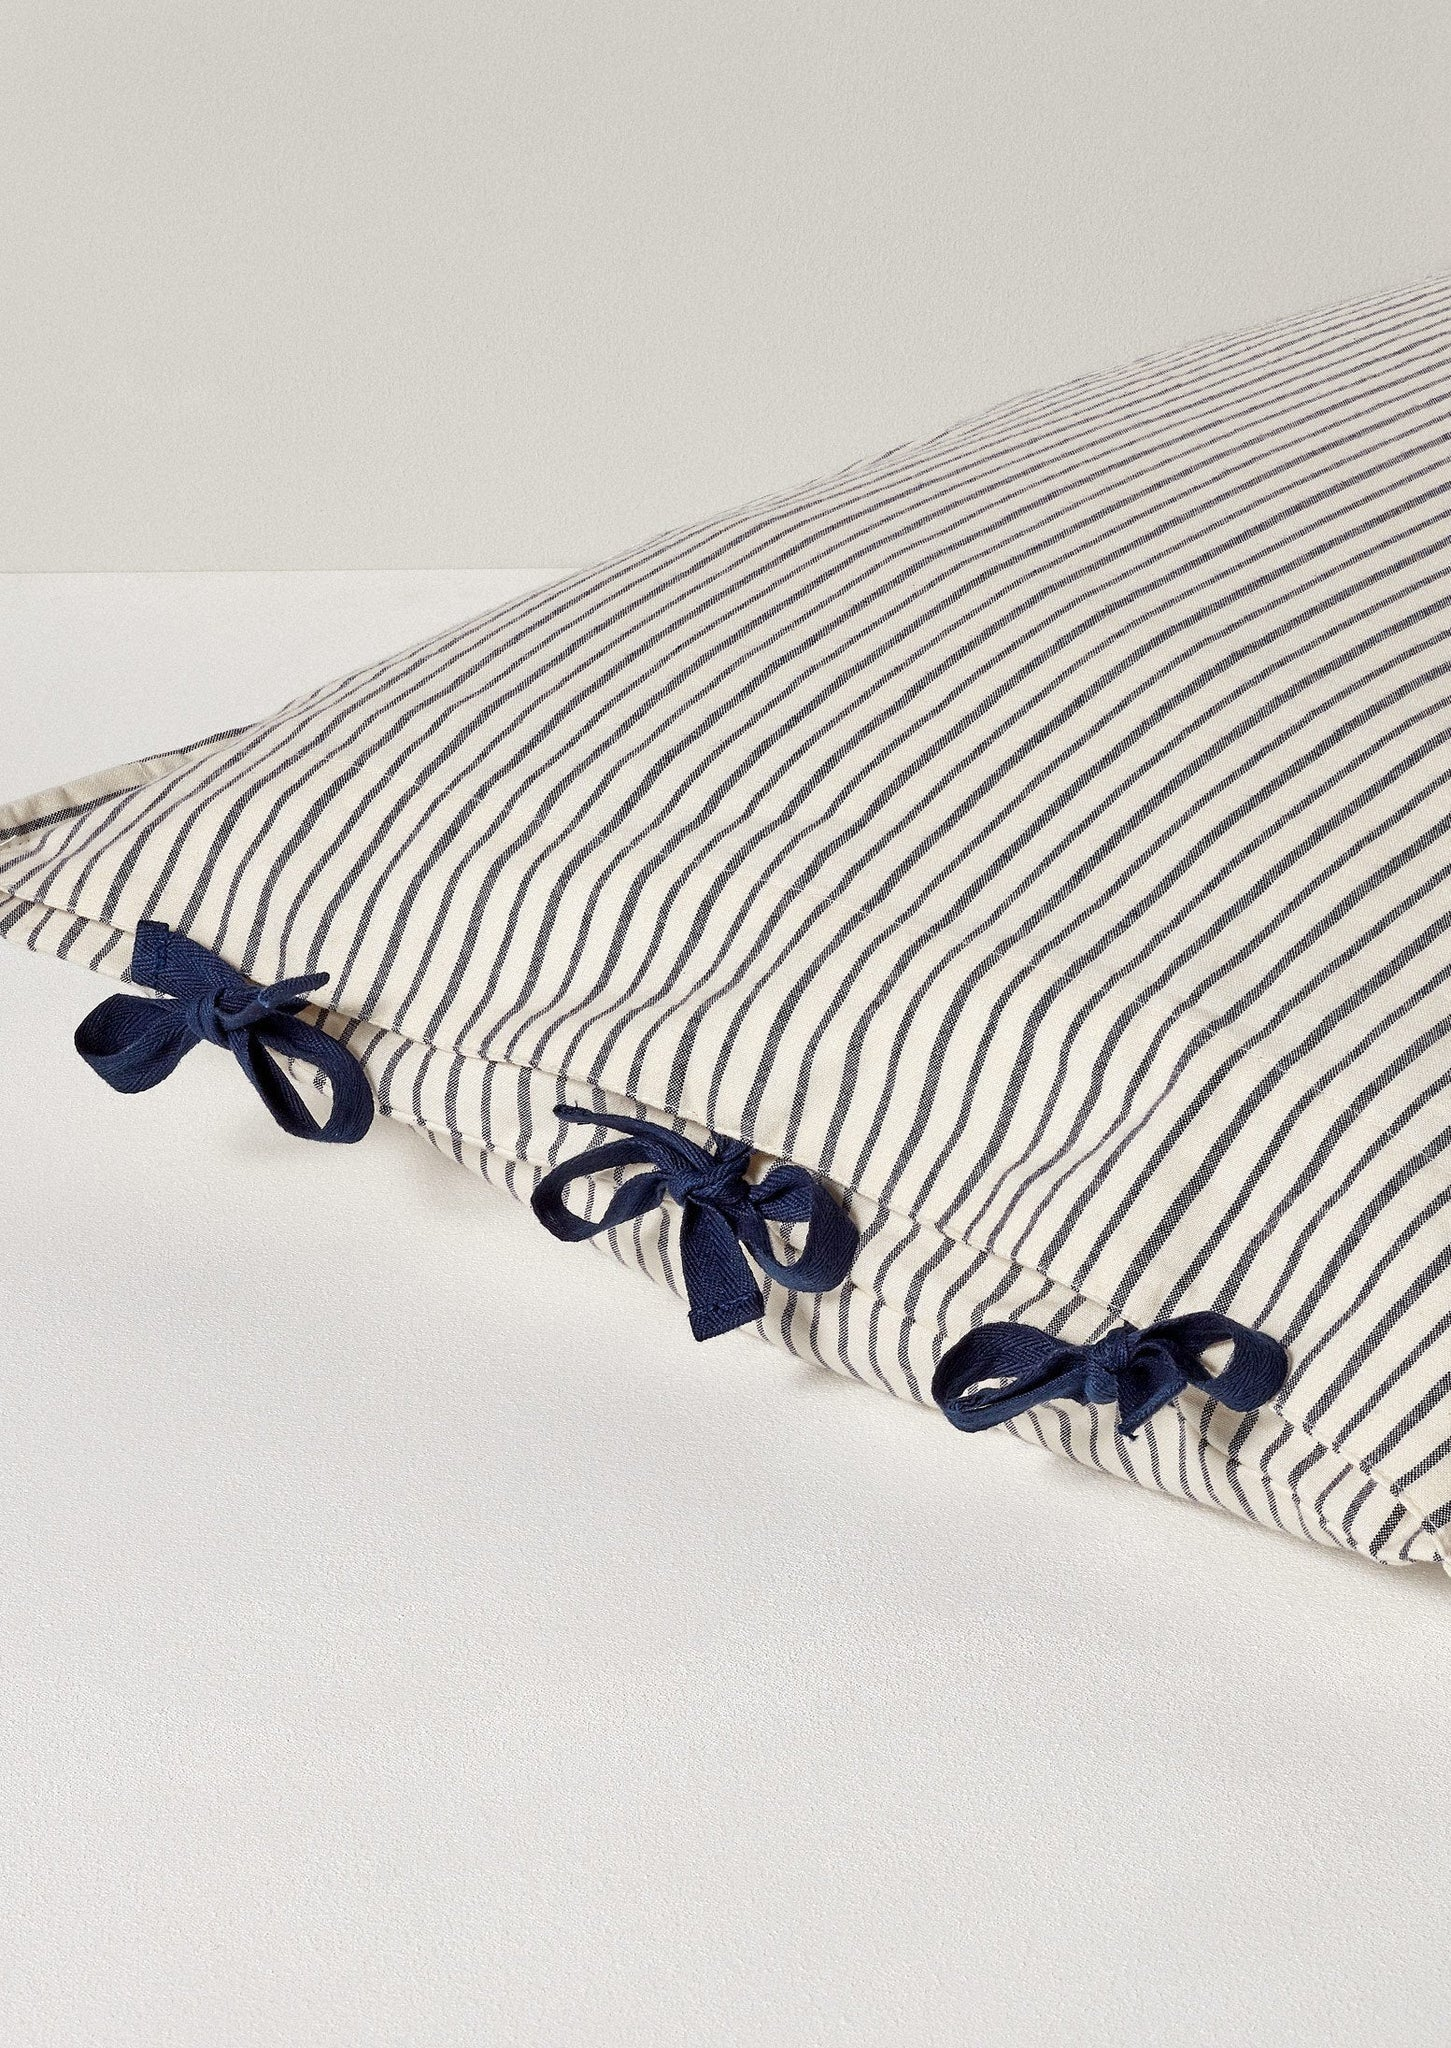 Organic Cotton Pyjama Stripe Housewife Pillowcase | Navy/Ecru ?id=16768507510818